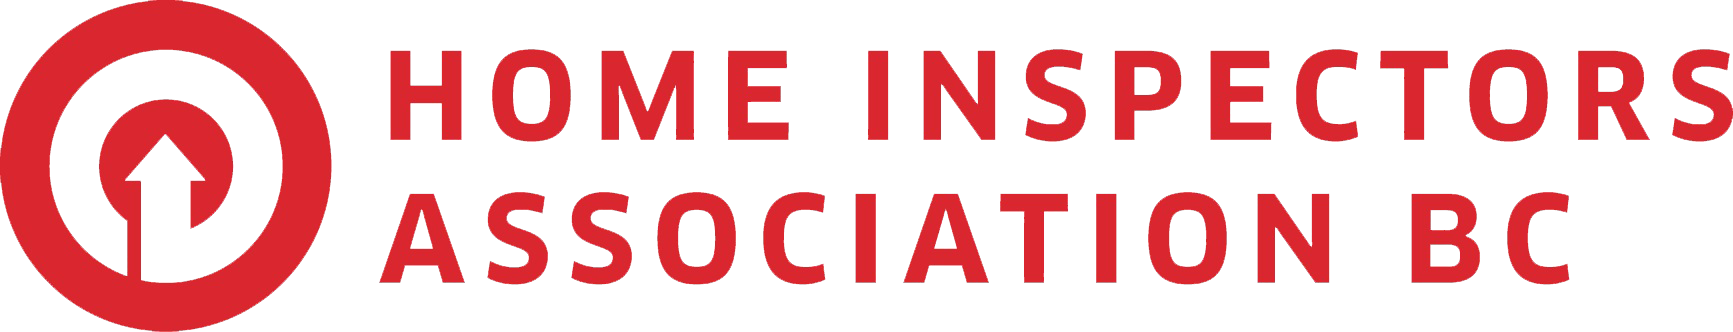 home inspectors association logo